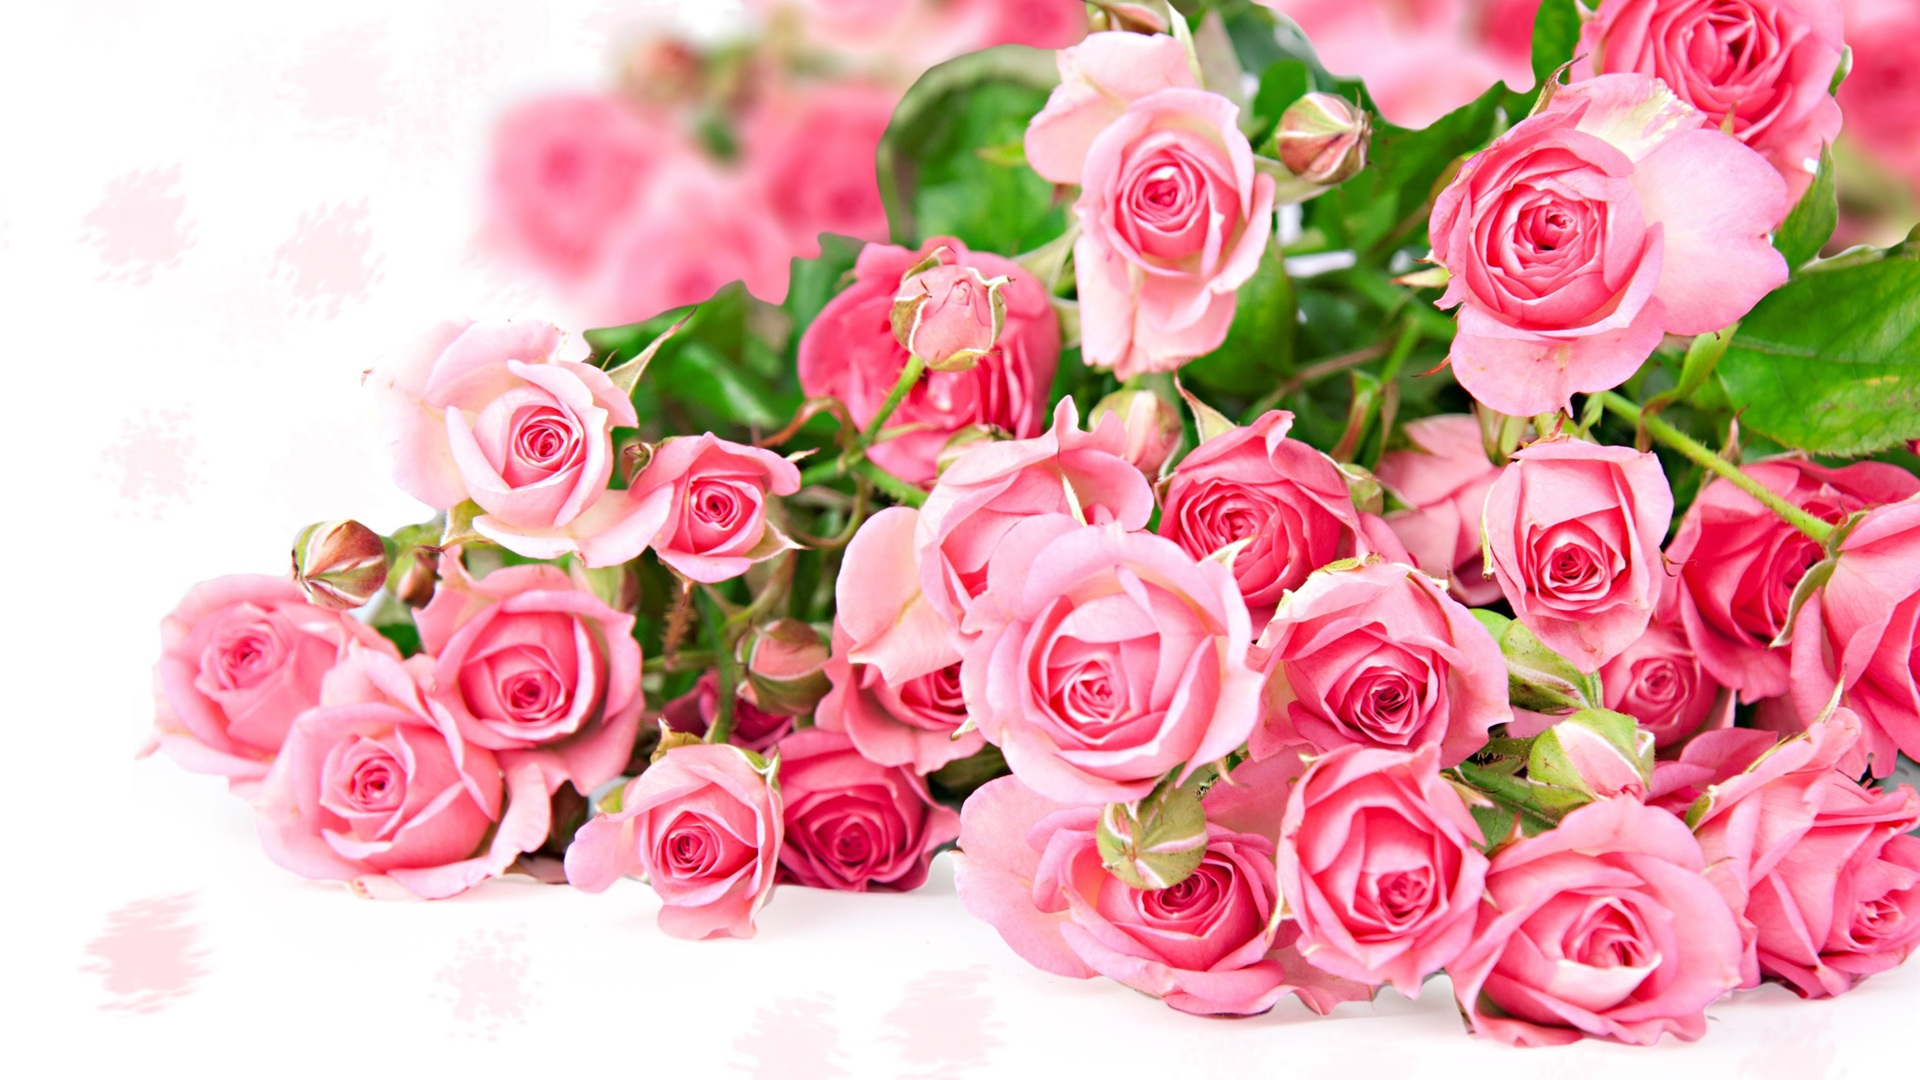 Wallpaper pink rose flower bouquet romantic color 2560x1600 hd wallpaper pink rose flower bouquet romantic color 2560x1600 hd picture image mightylinksfo